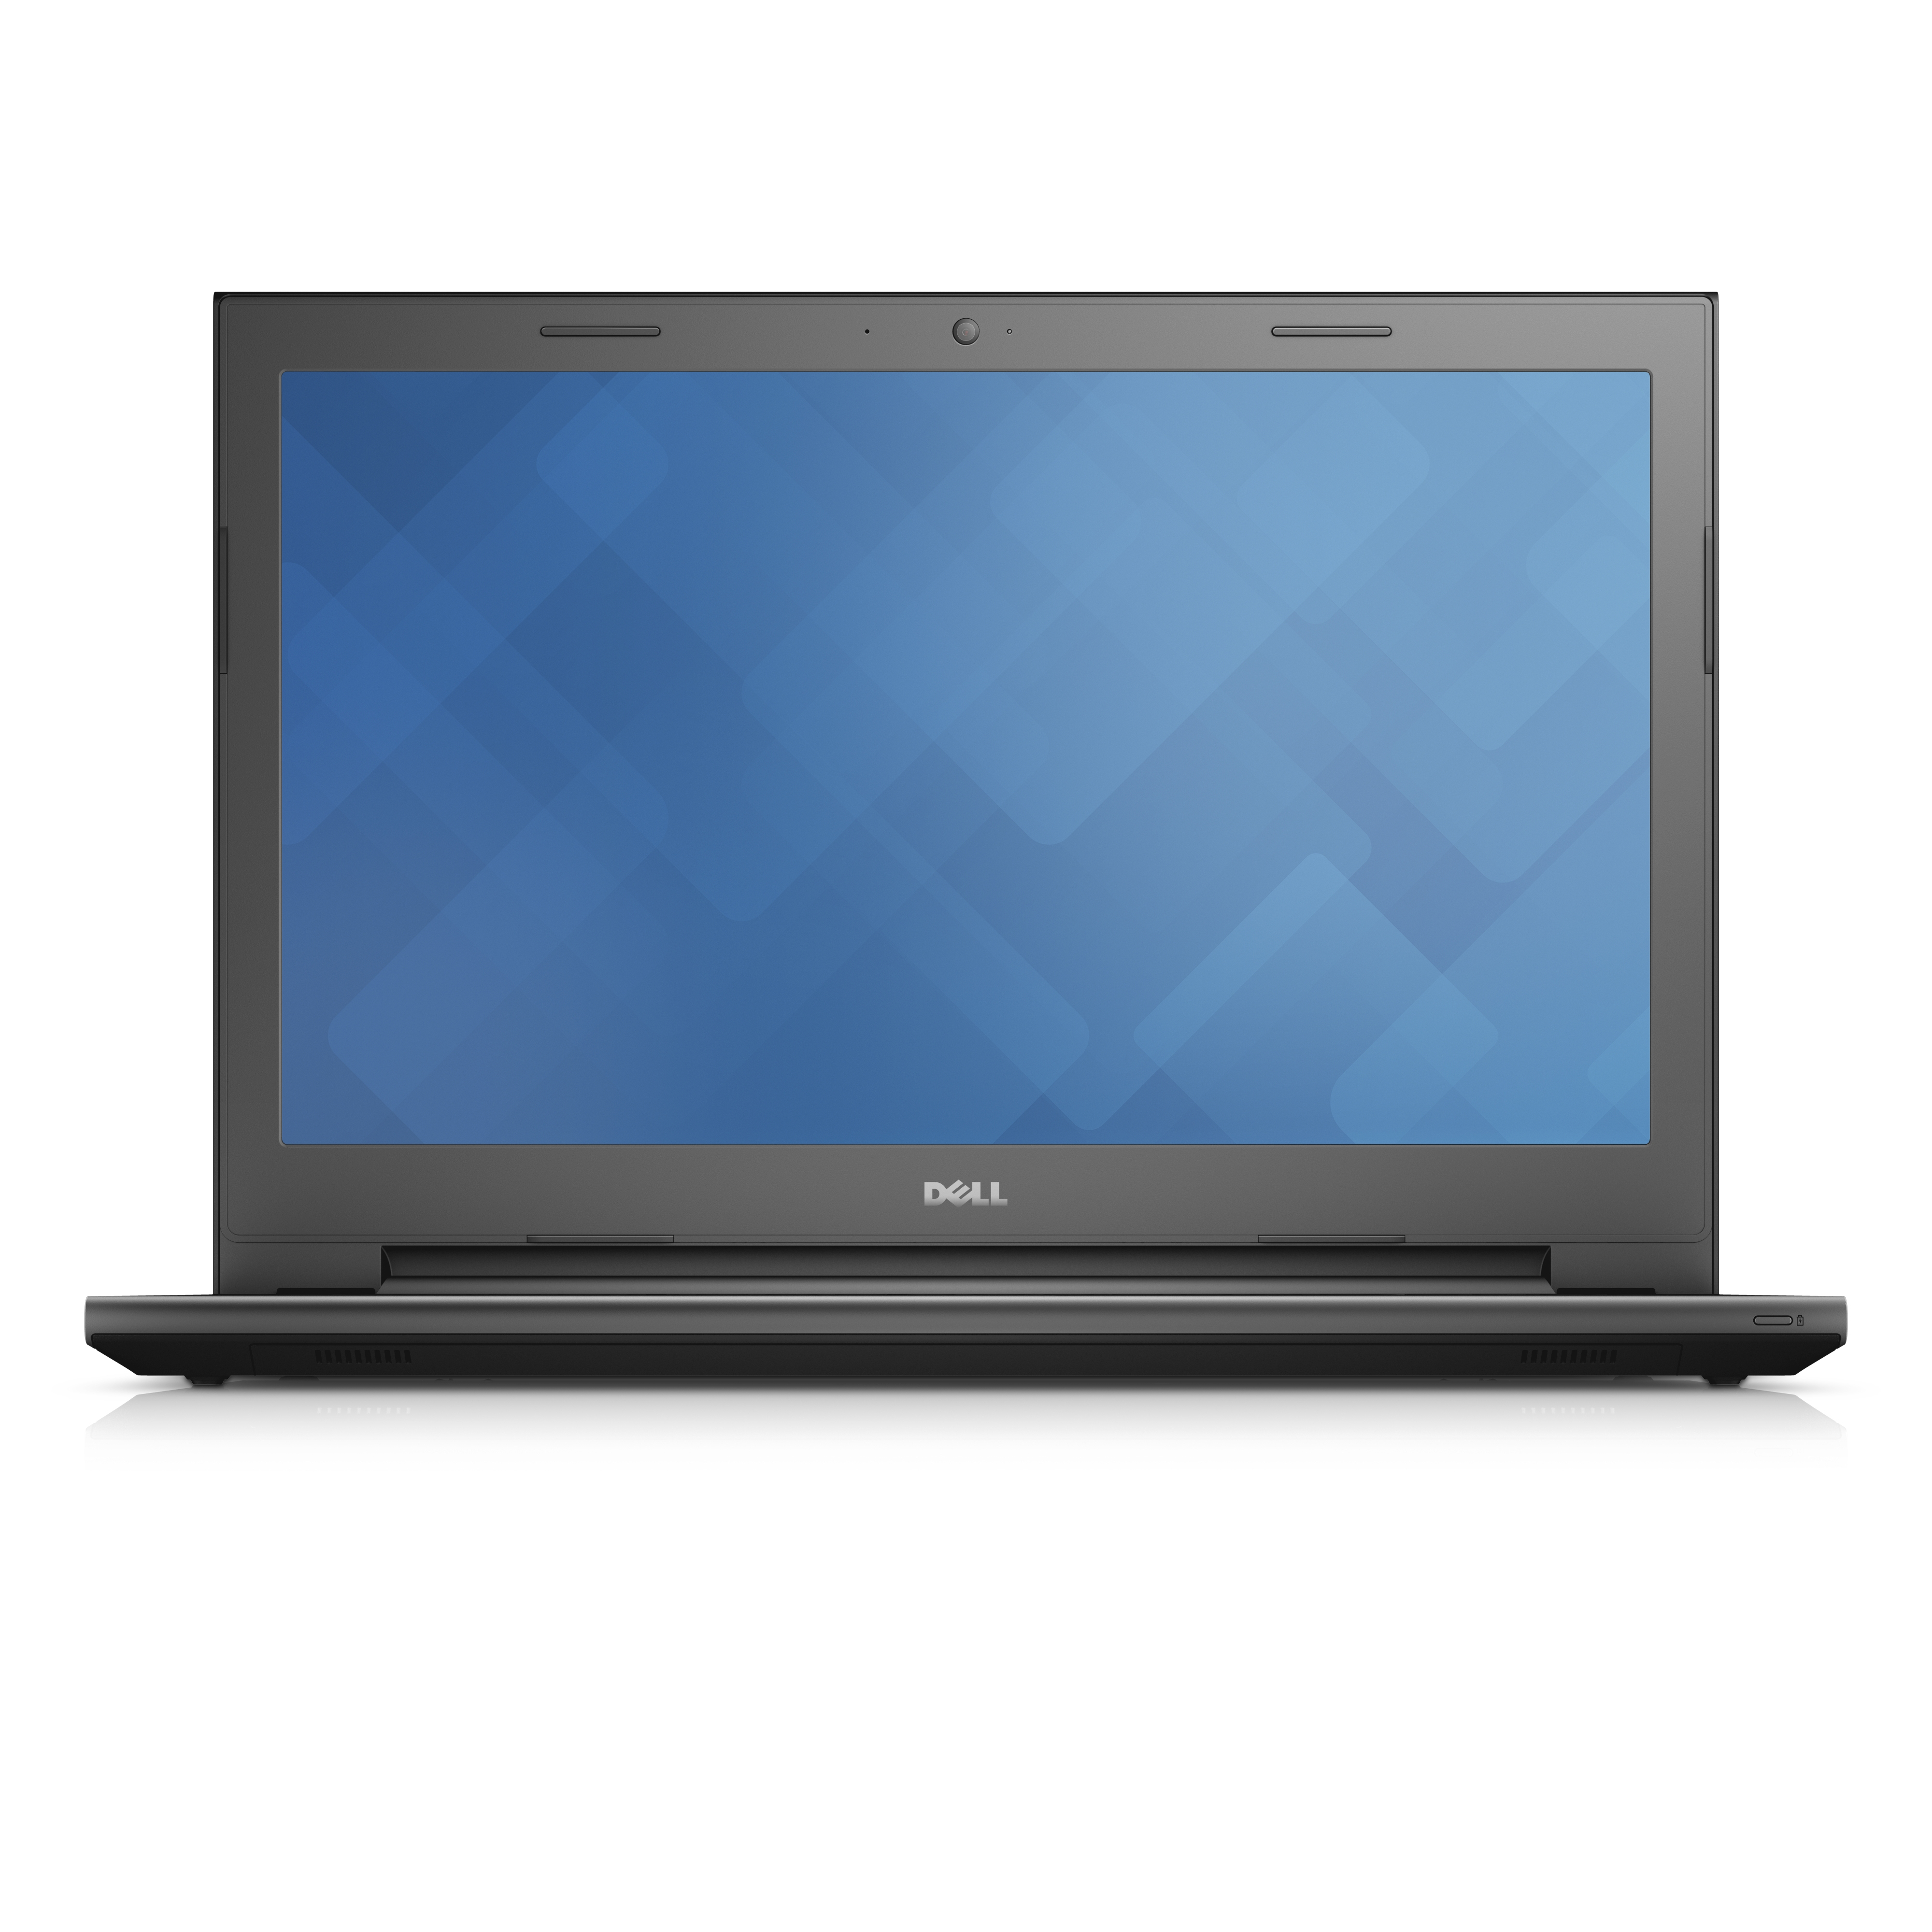 DELL Vostro 3549 3549-8628 Cel 3205U 4GB 500GB DVDRW 15.6IN BT CAM Win 8.1